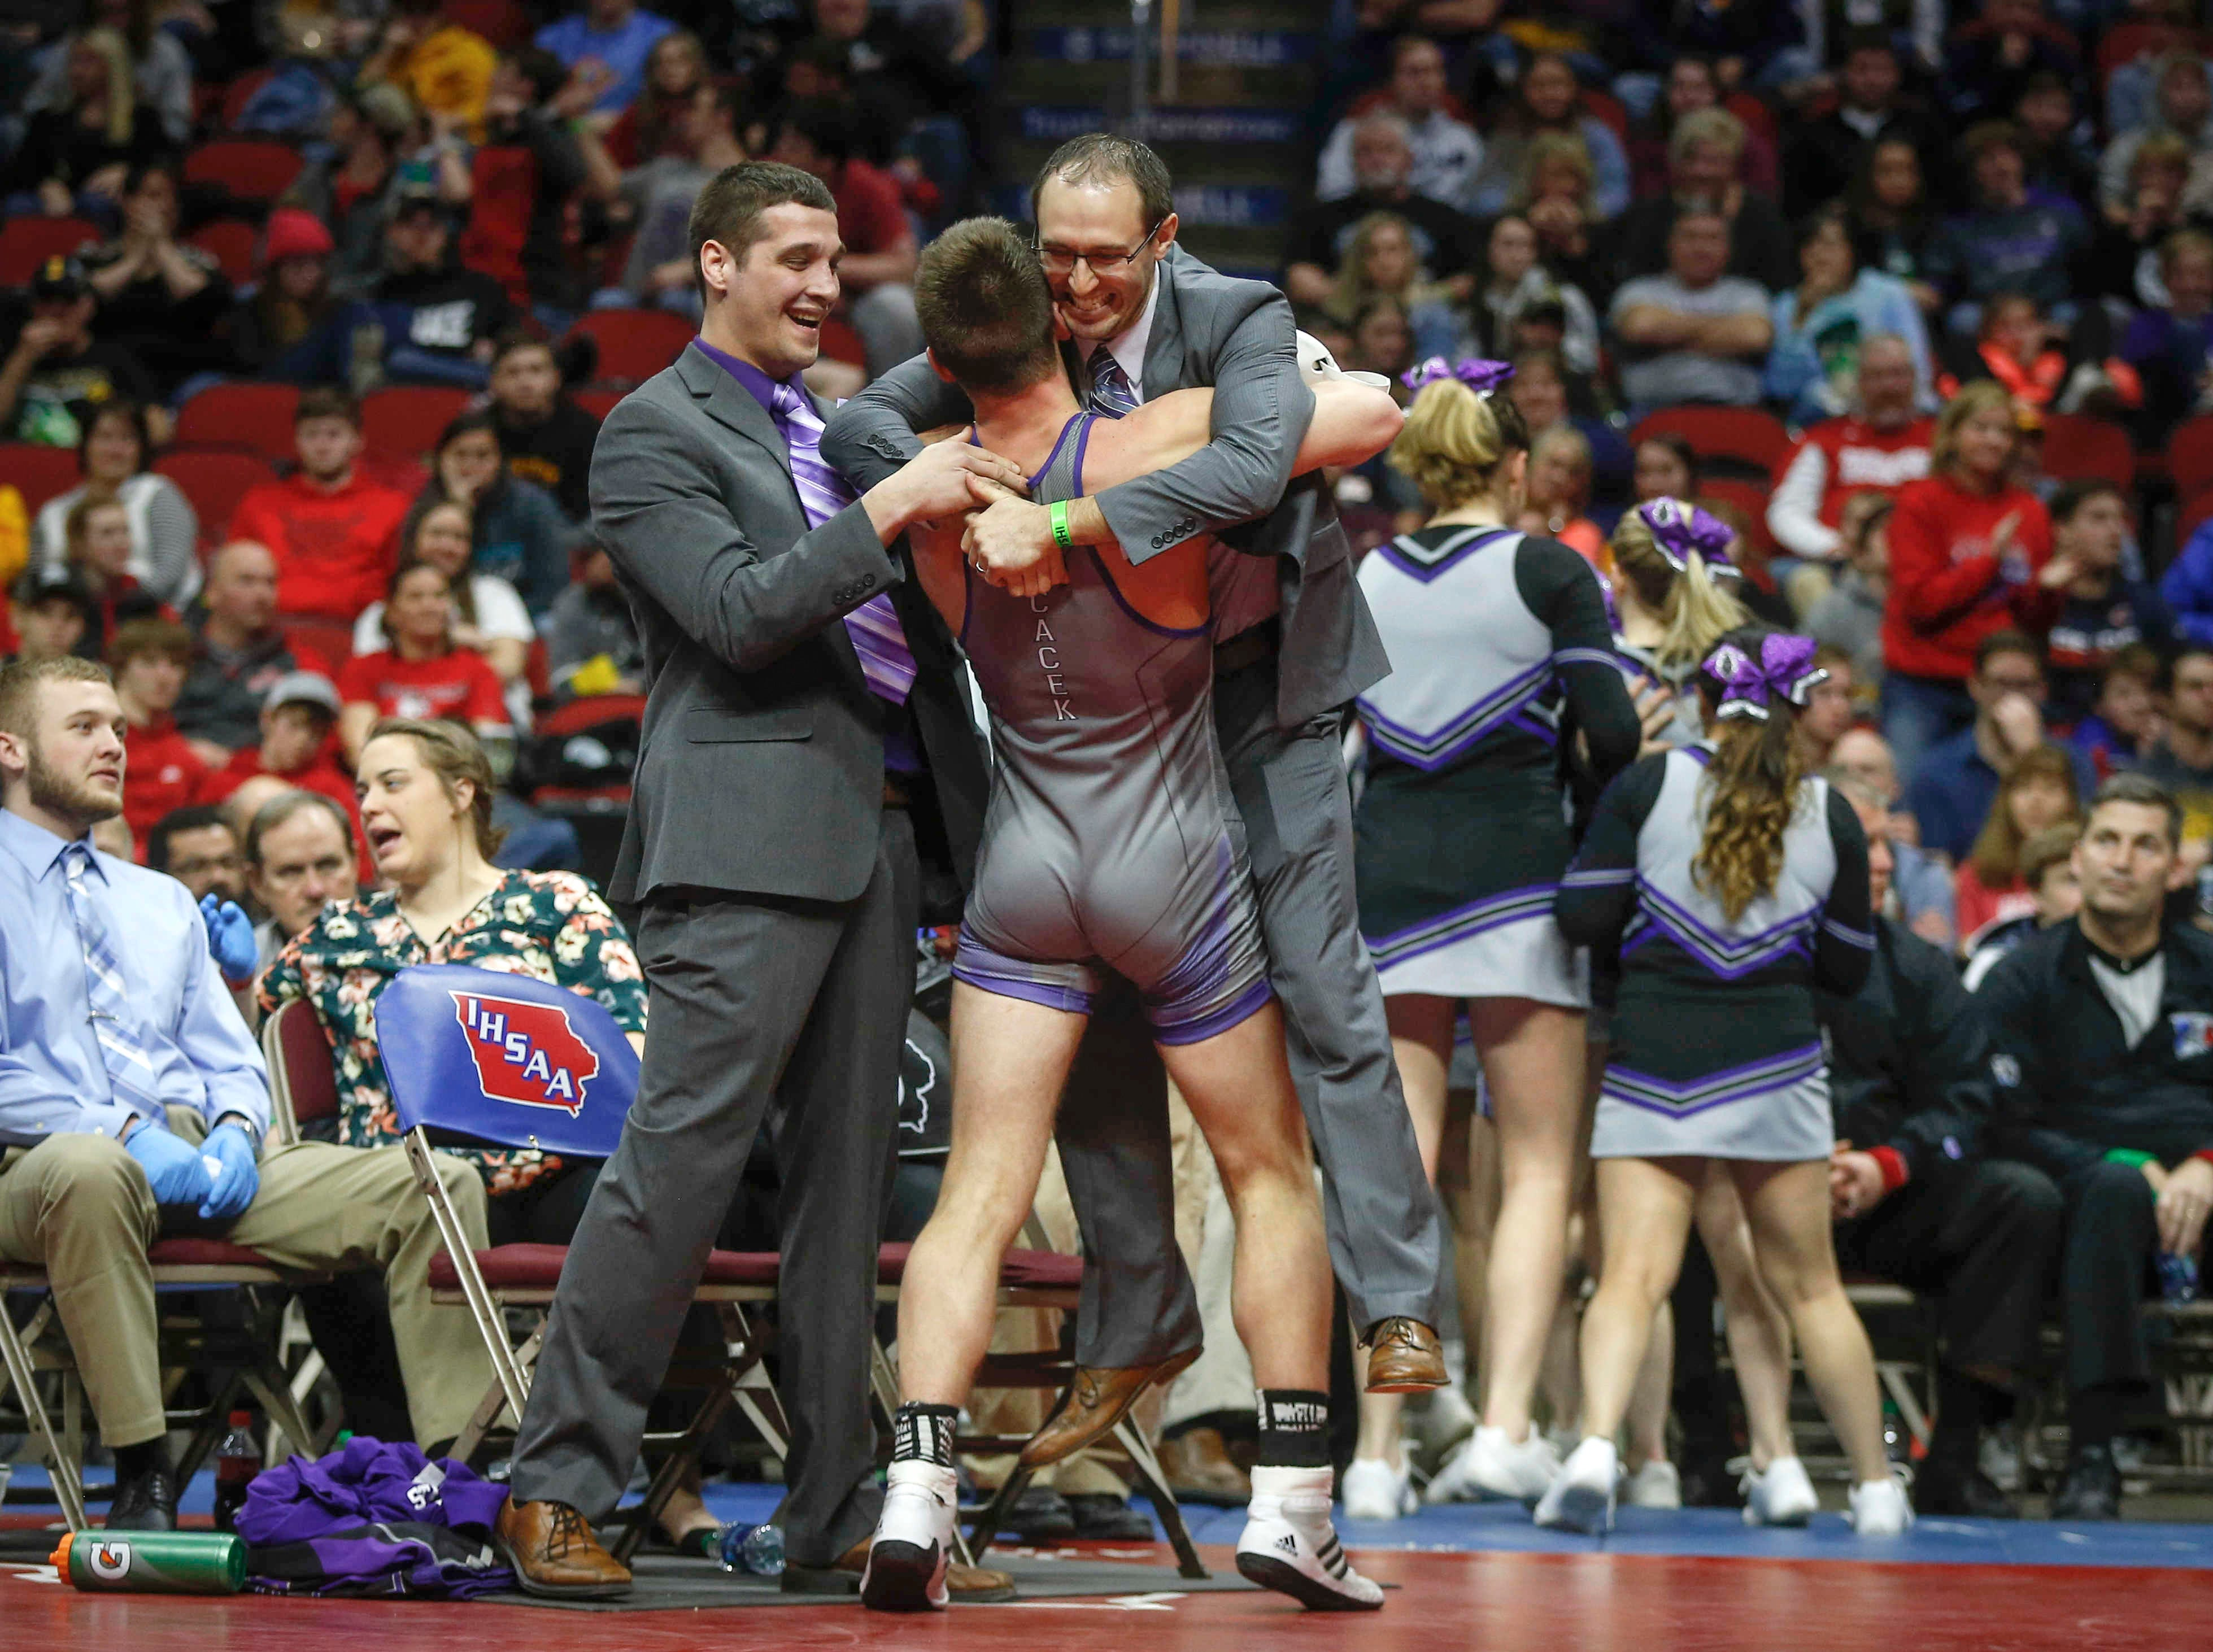 GTRA junior Treyton Cacek celebrates a Class 1A state title win with his coaches after beating Western Christian sophomore Tristan Mulder at 170 pounds on Saturday, Feb. 16, 2019, at Wells Fargo Arena in Des Moines.